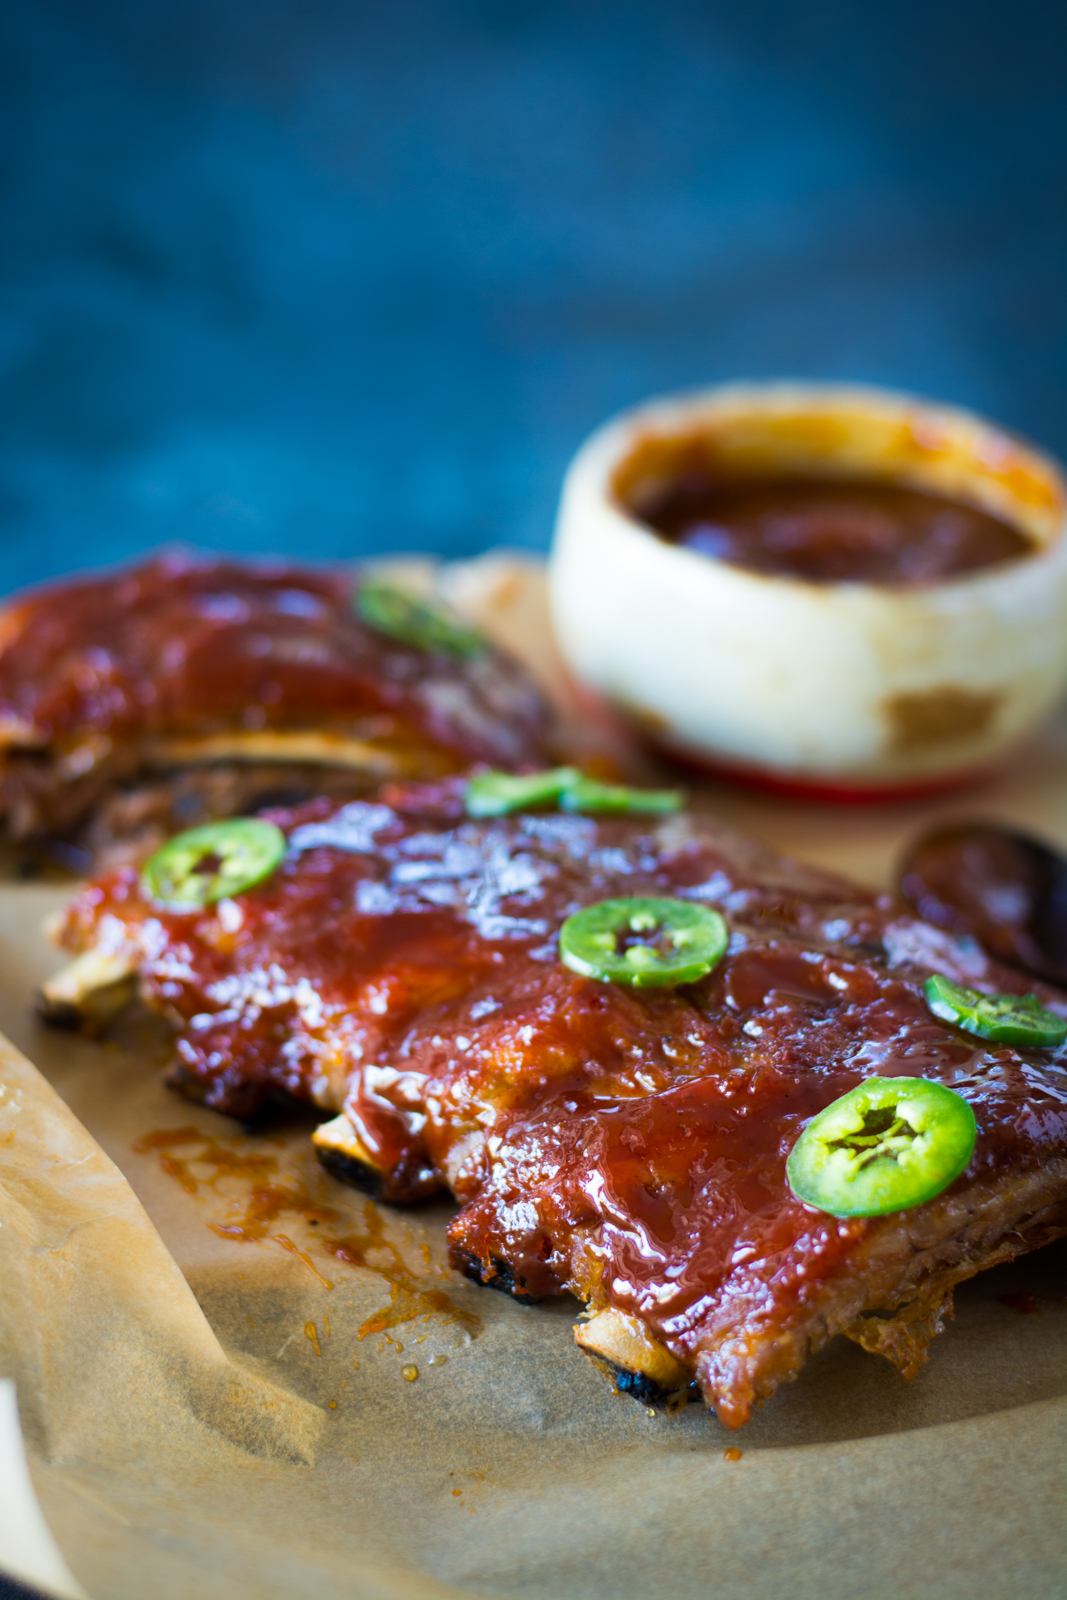 Apricot Ginger Beer Glaze topped with jalapeno slices.